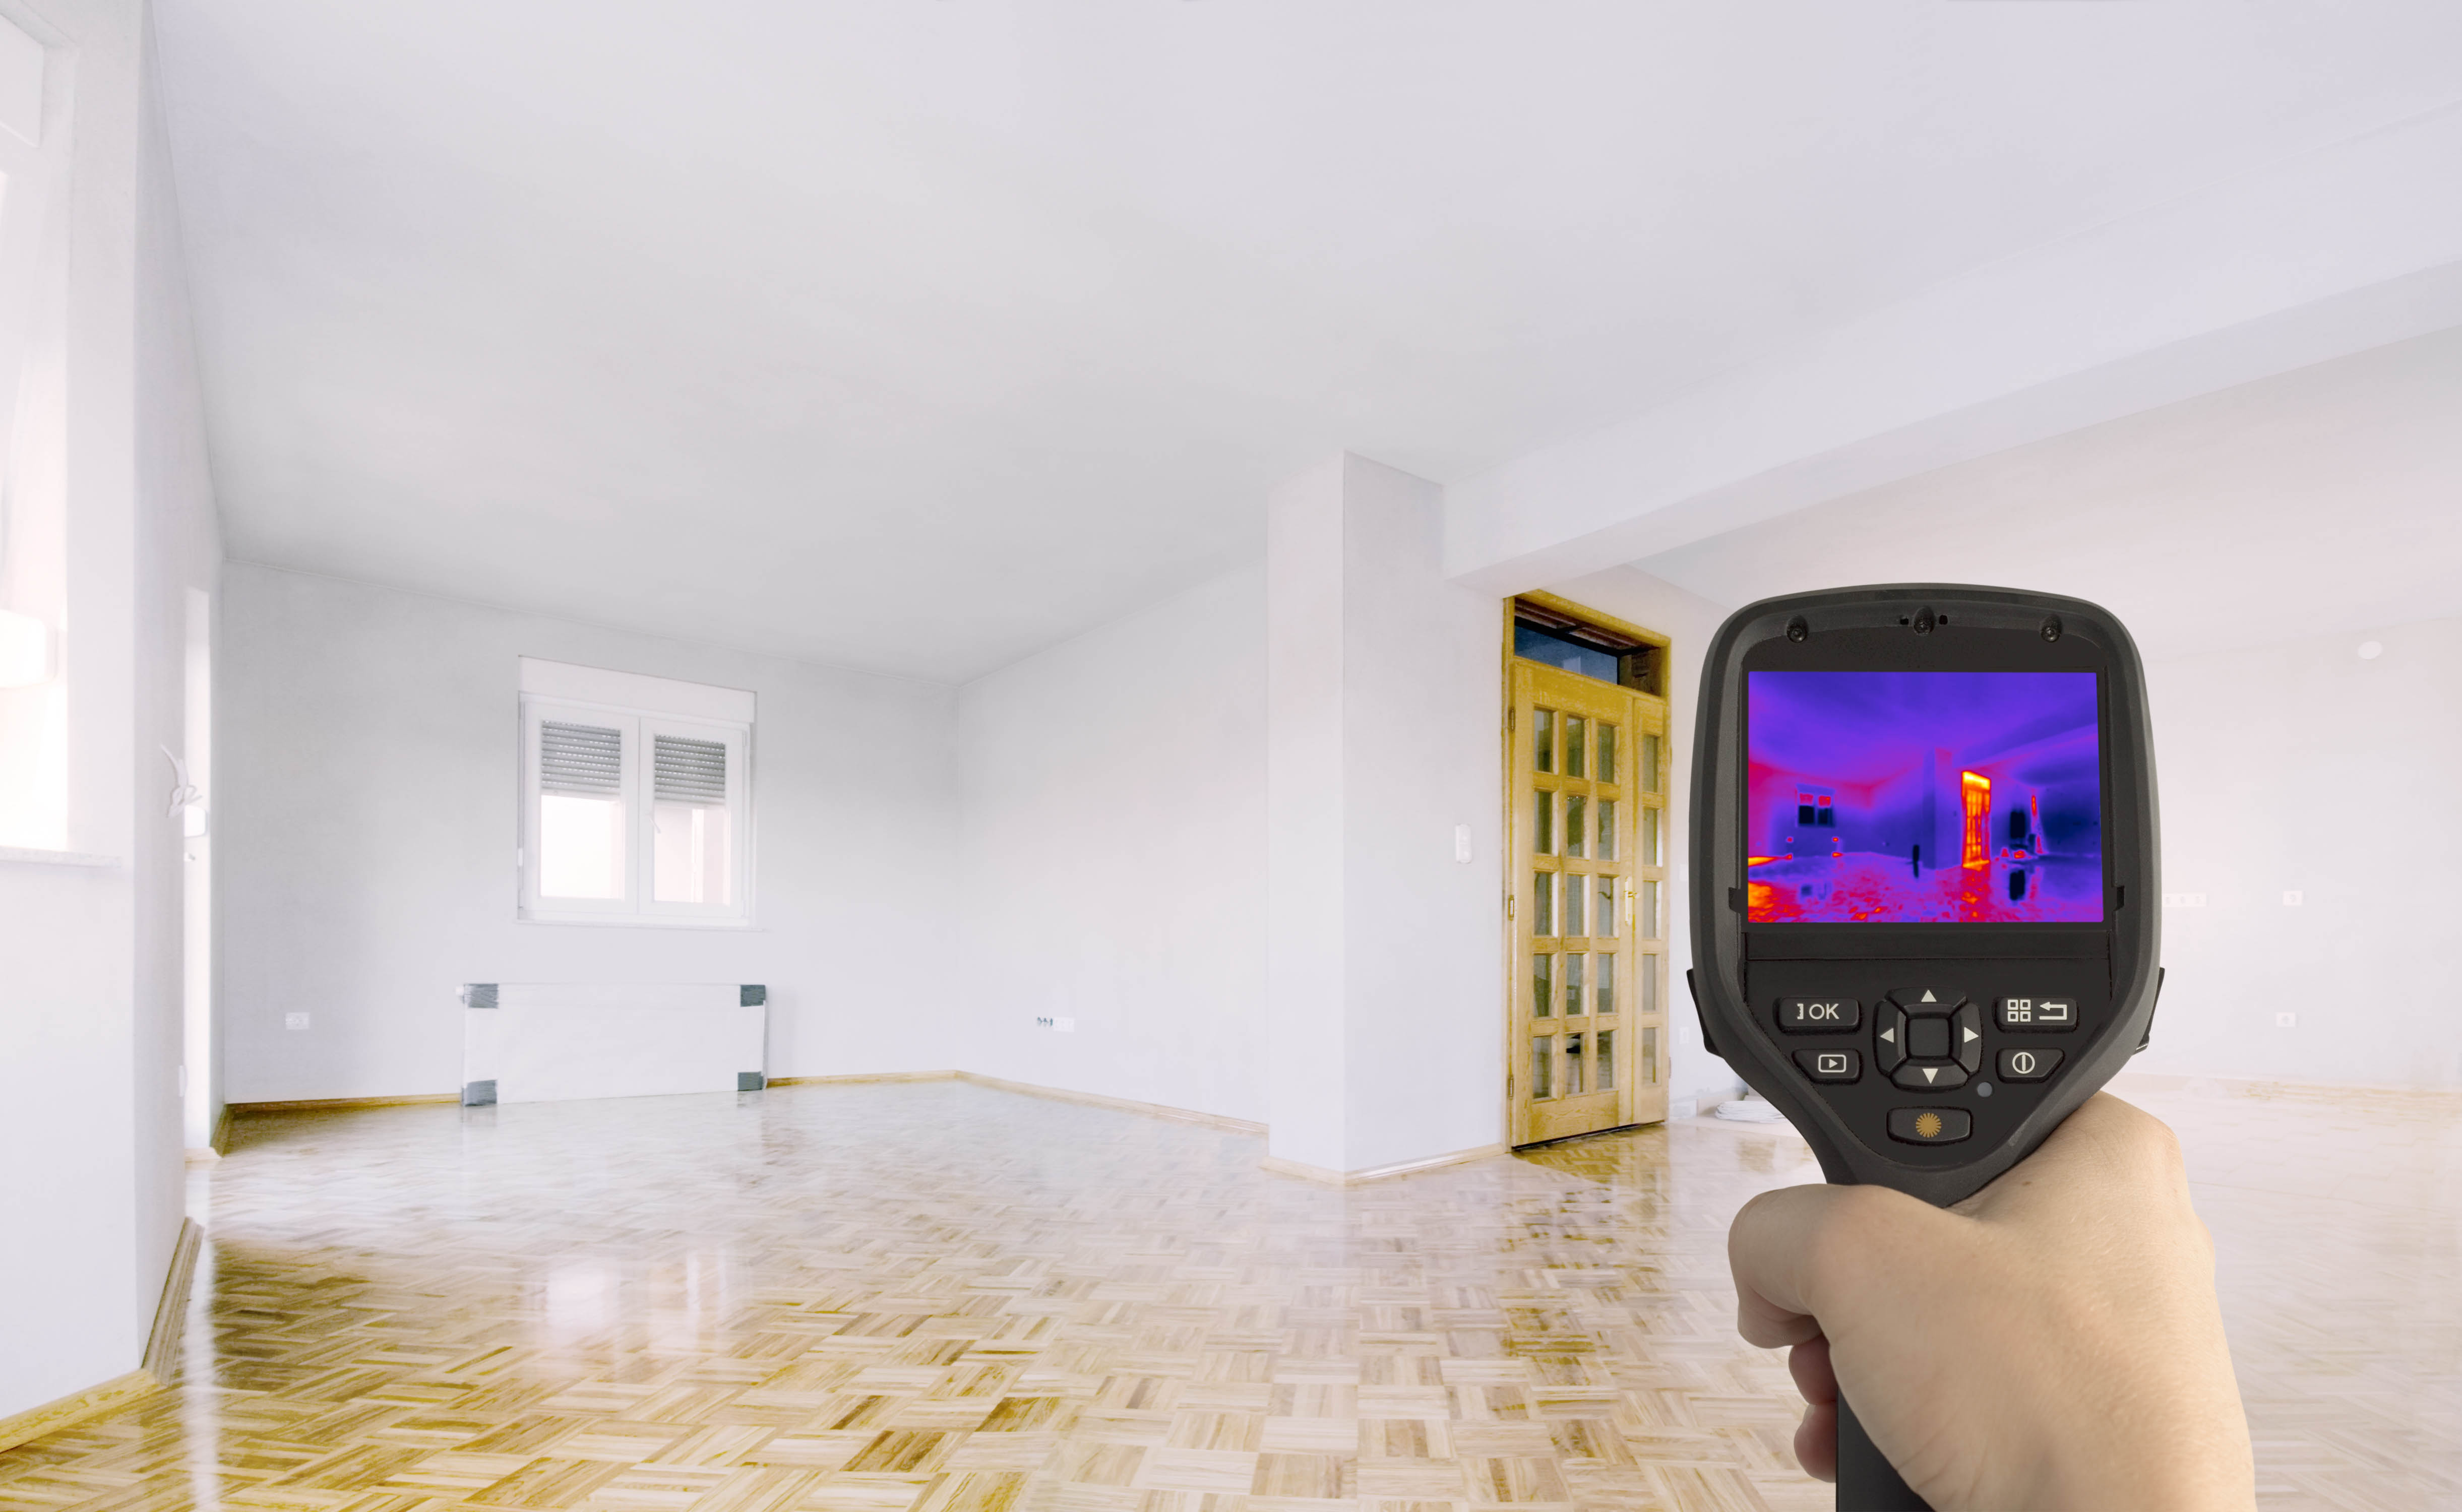 Thermal Imaging inspection services